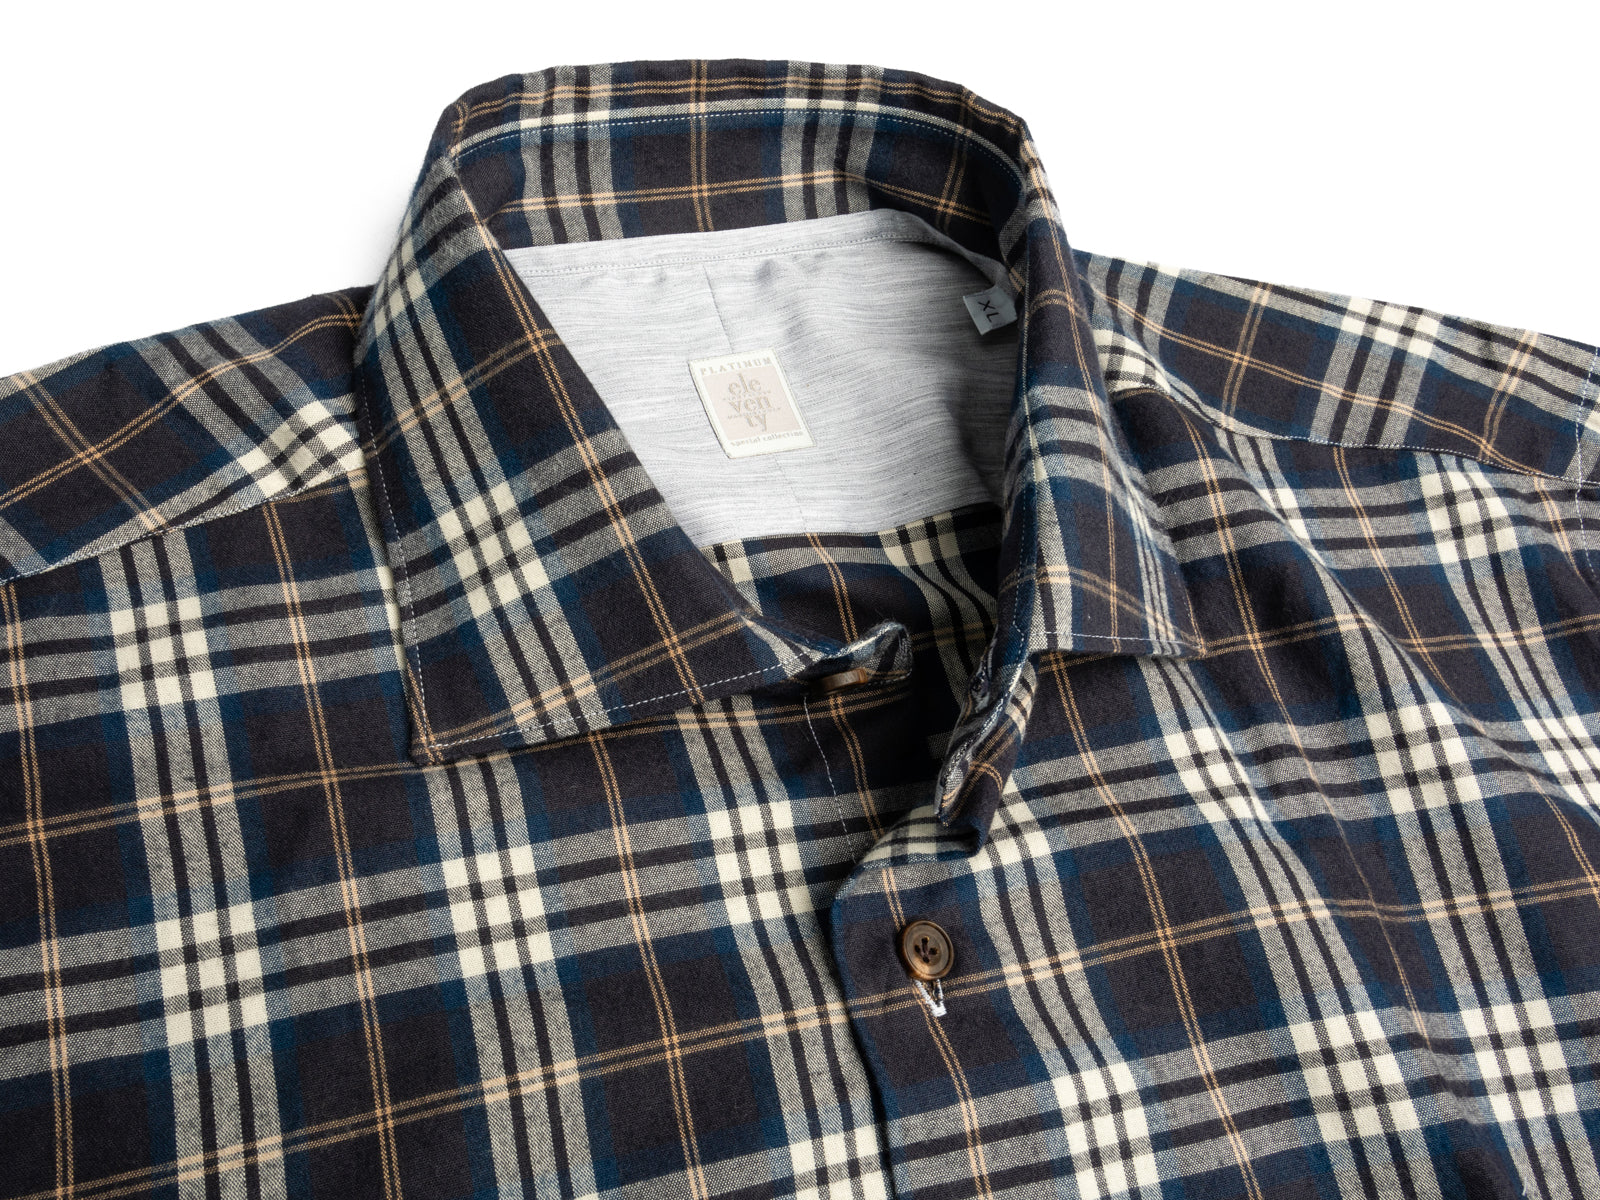 Navy Plaid with Camel in Brushed Twill